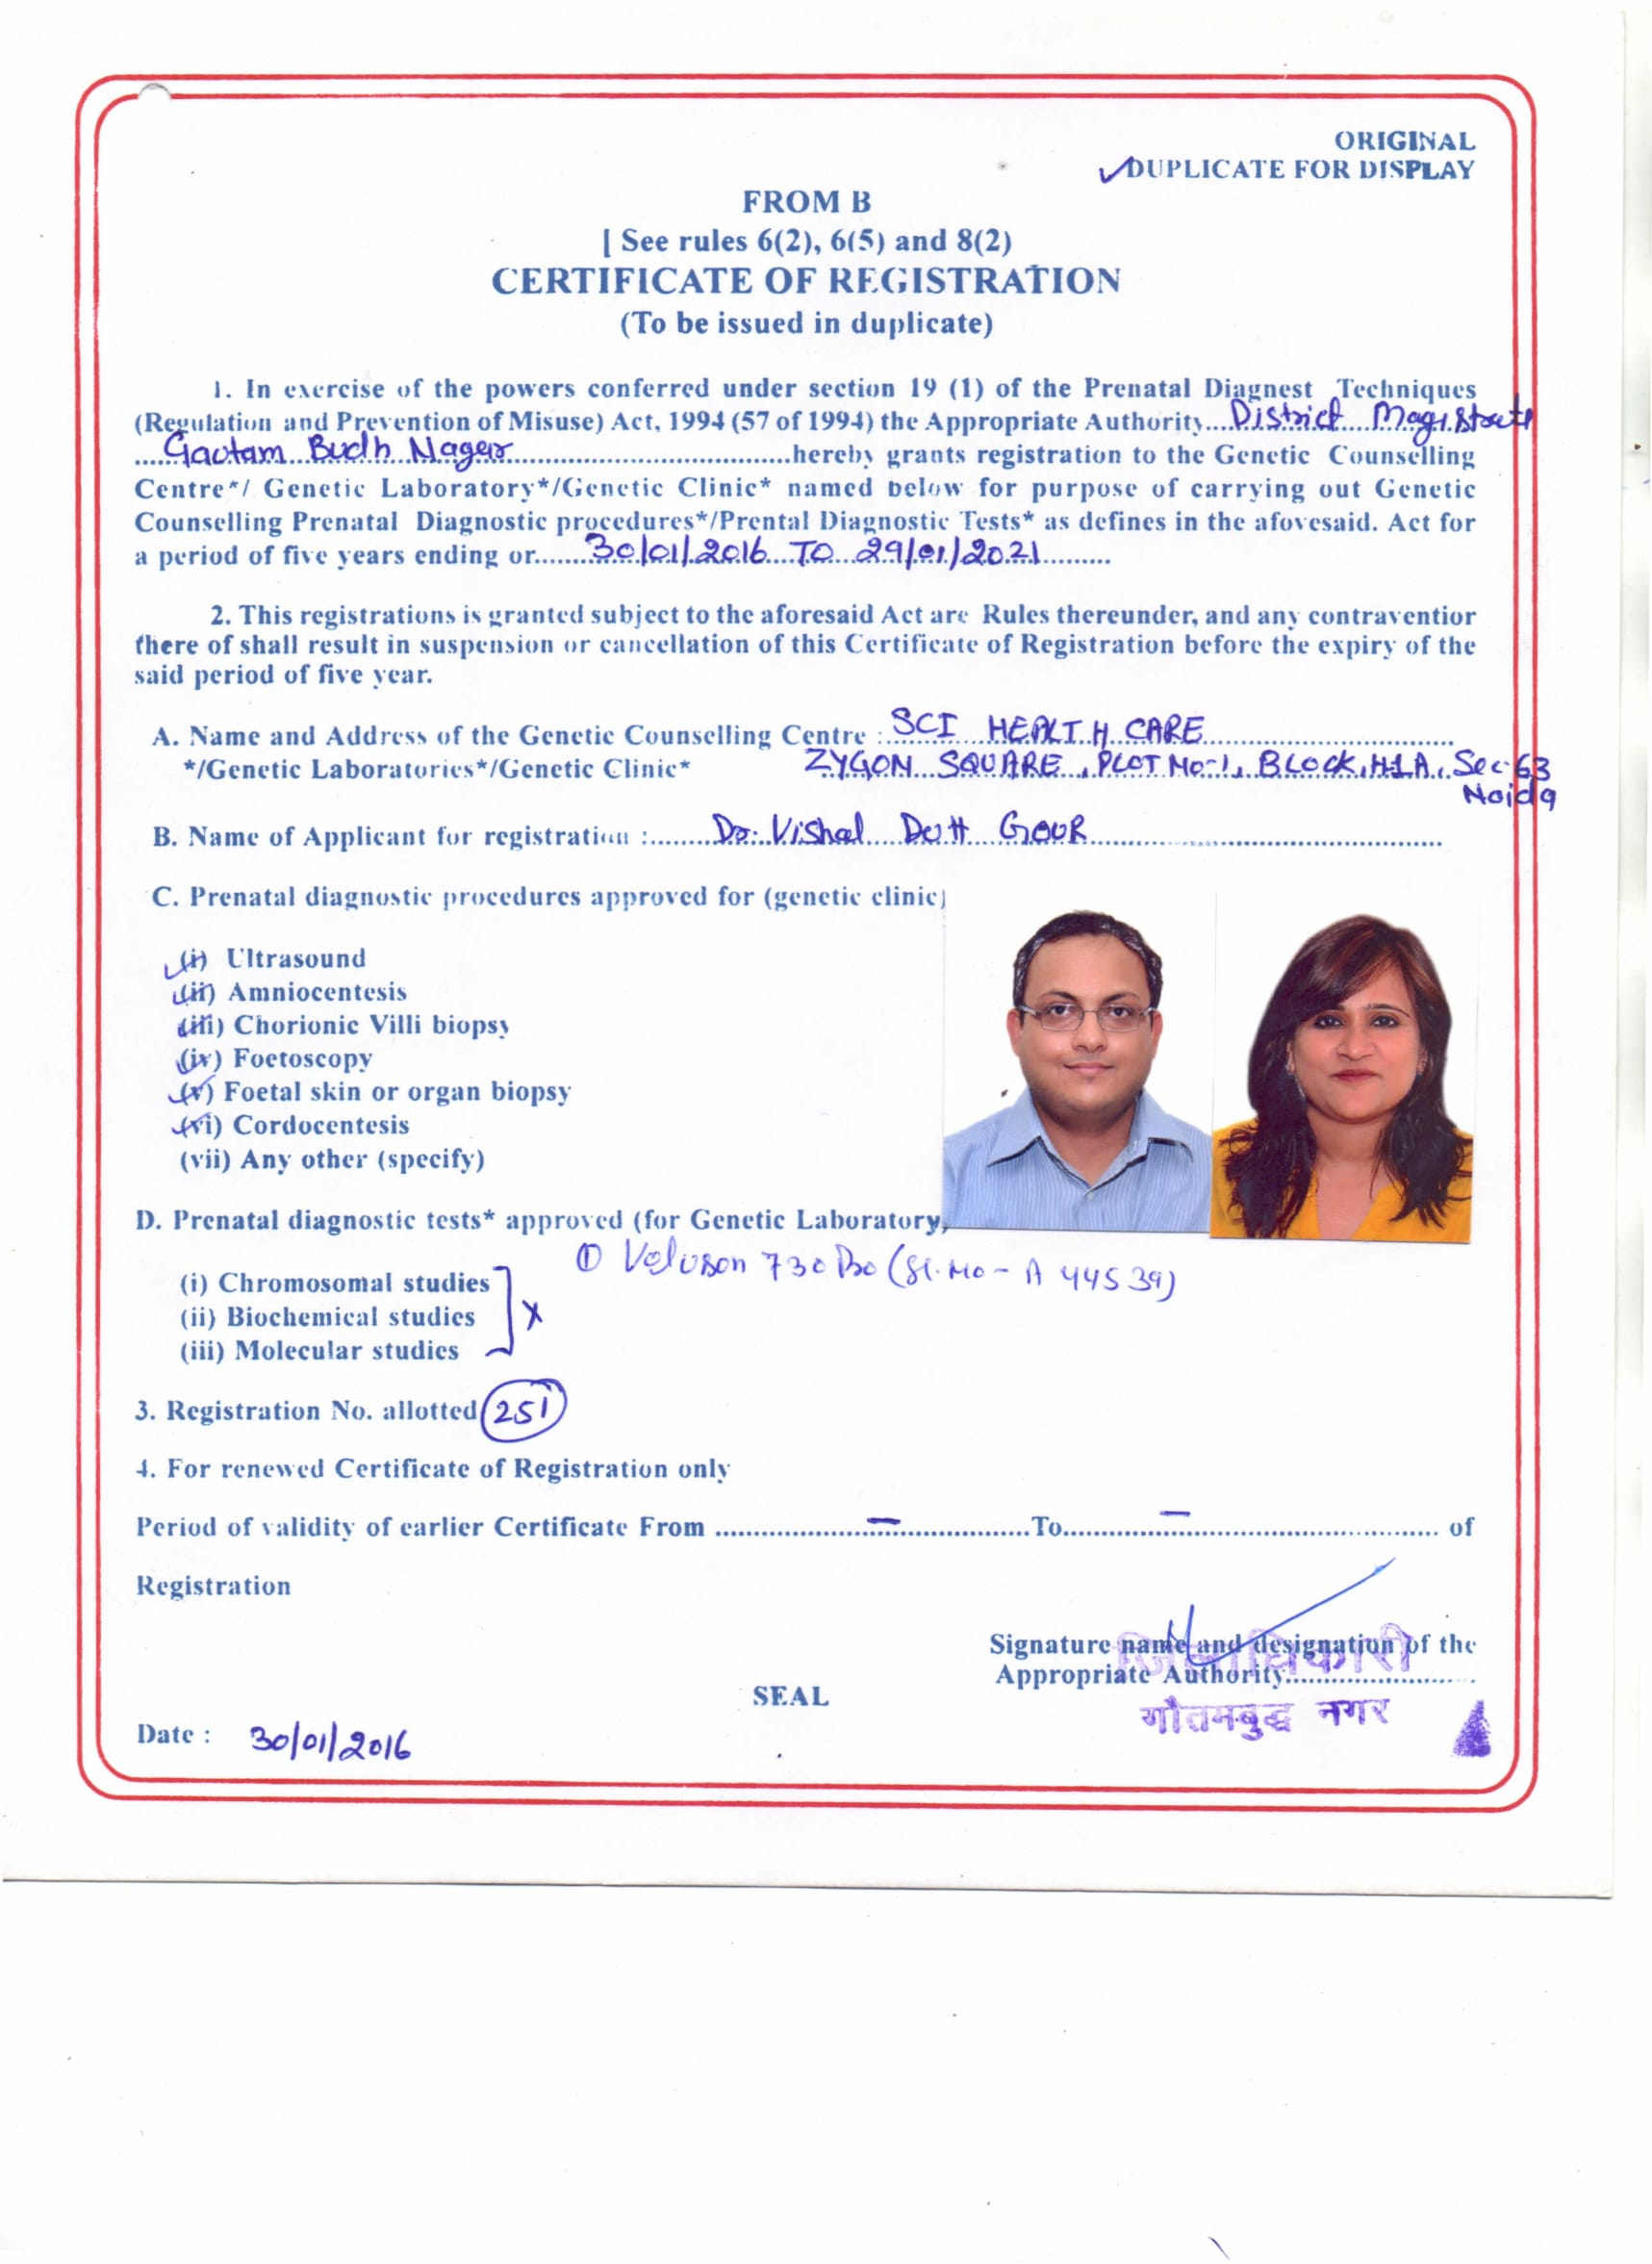 Dr Shivani and Dr Vishal Registration Certification